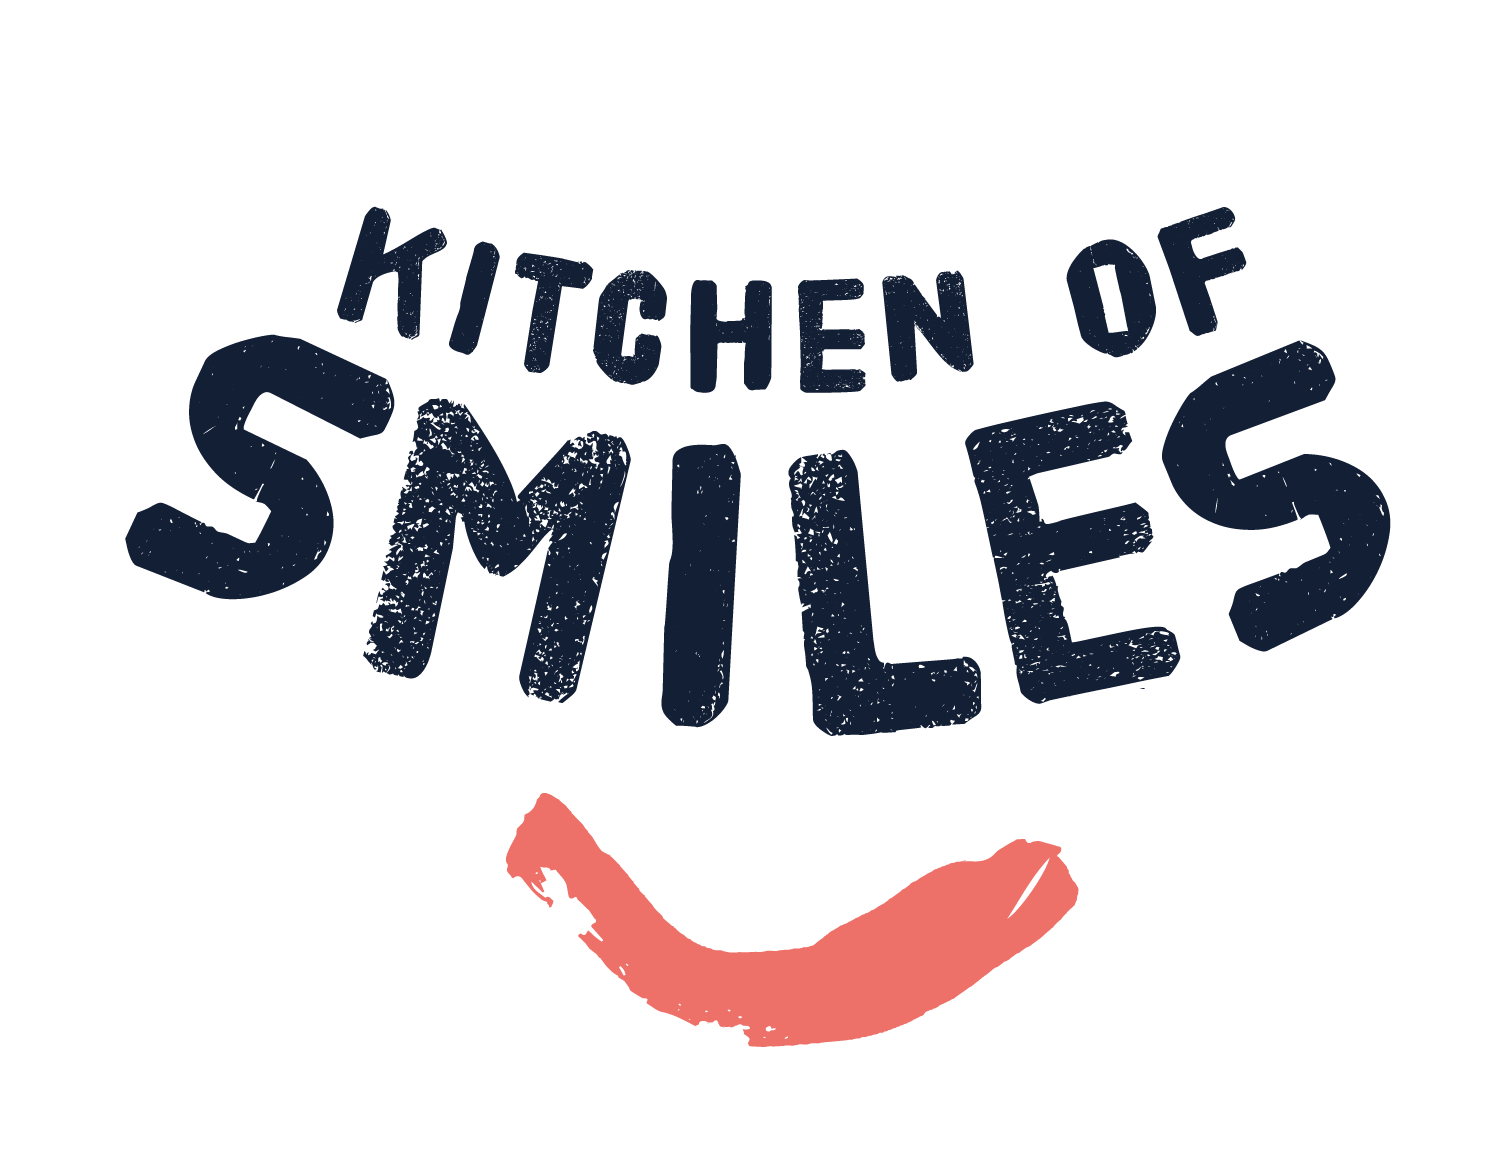 Kitchen of smiles